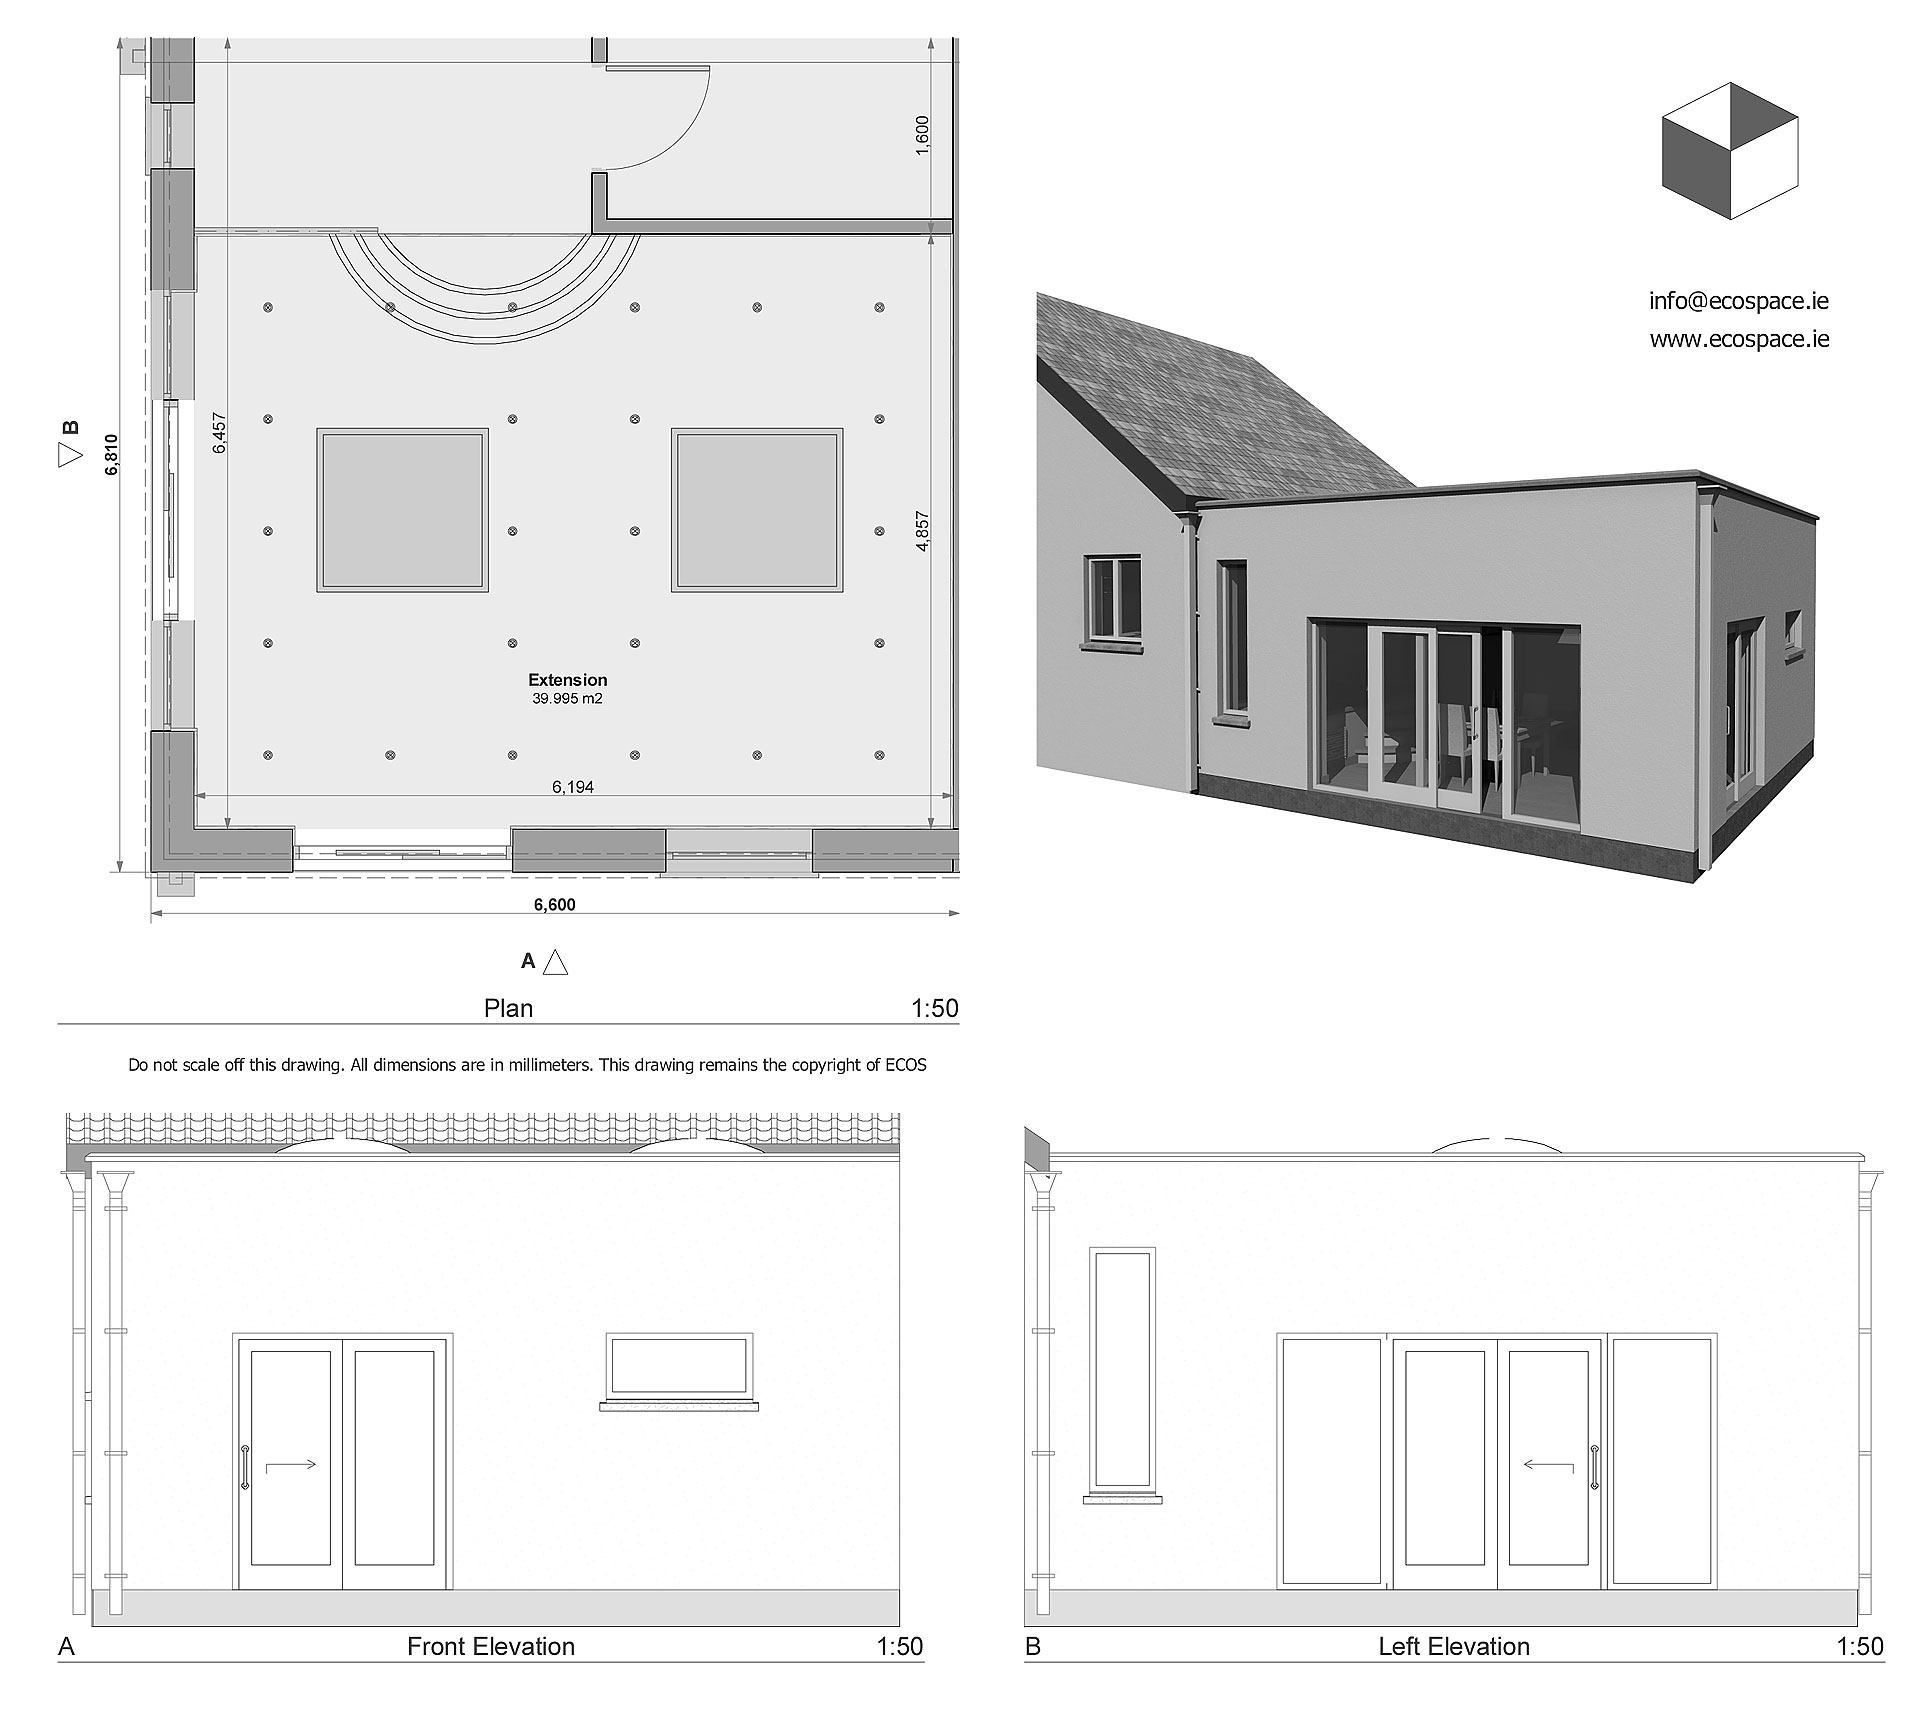 house extension design ideas images home extension plans ecos - Home Extension Designs